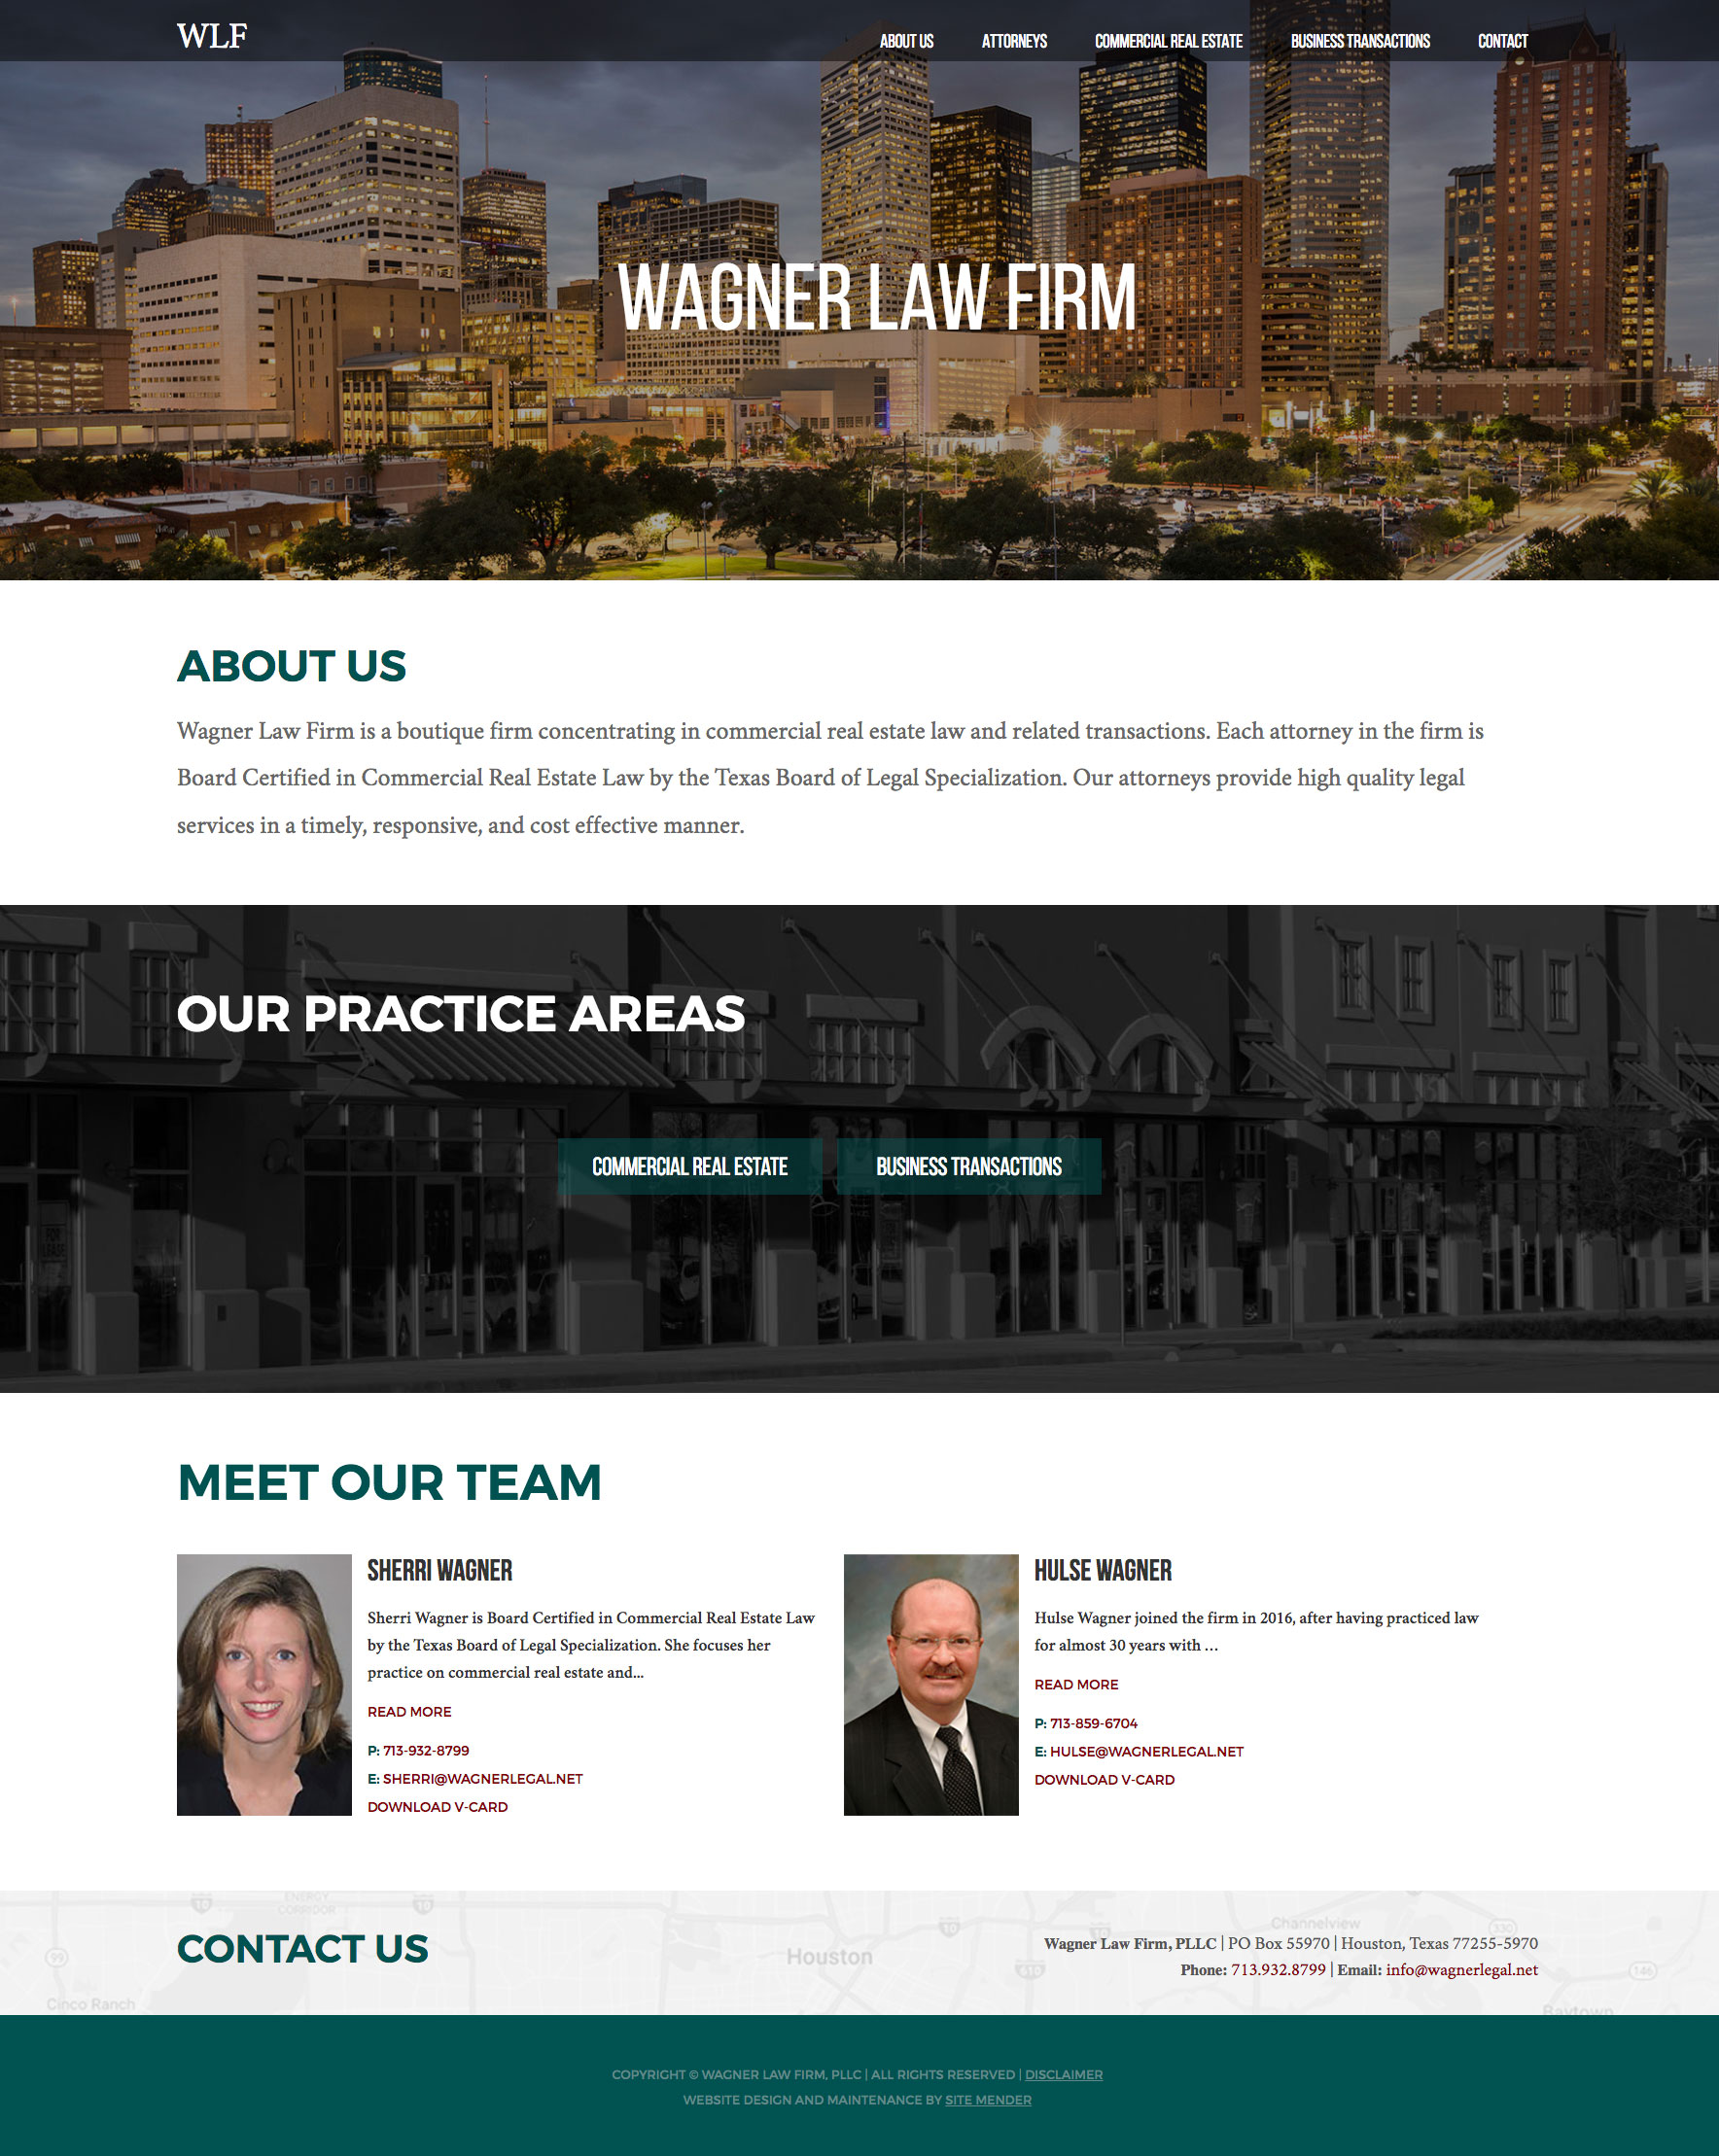 The new law firm website design for Wagner Legal.